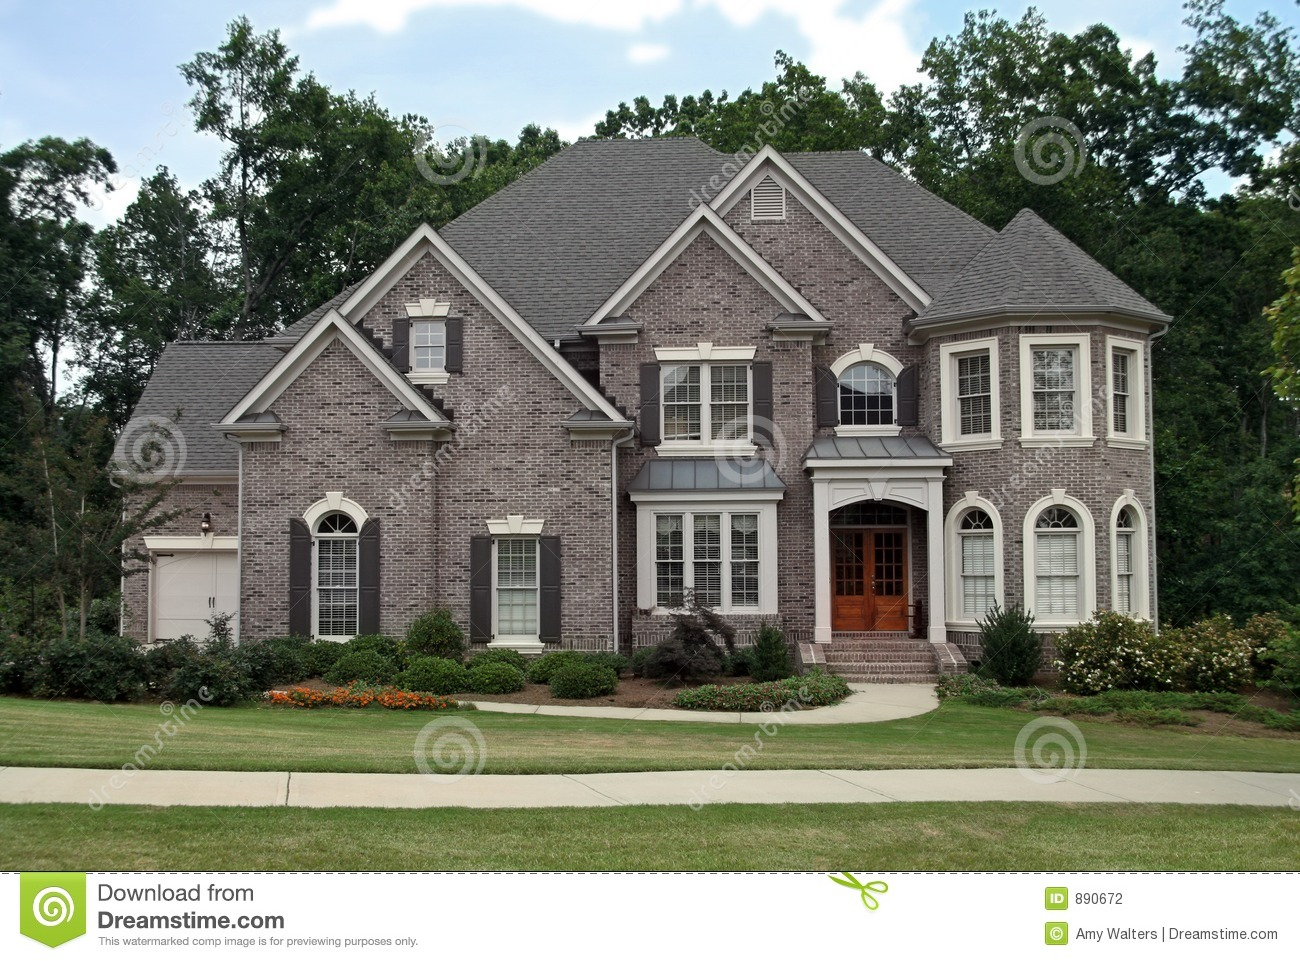 House in addition luxury rustic house plans on all brick home plans